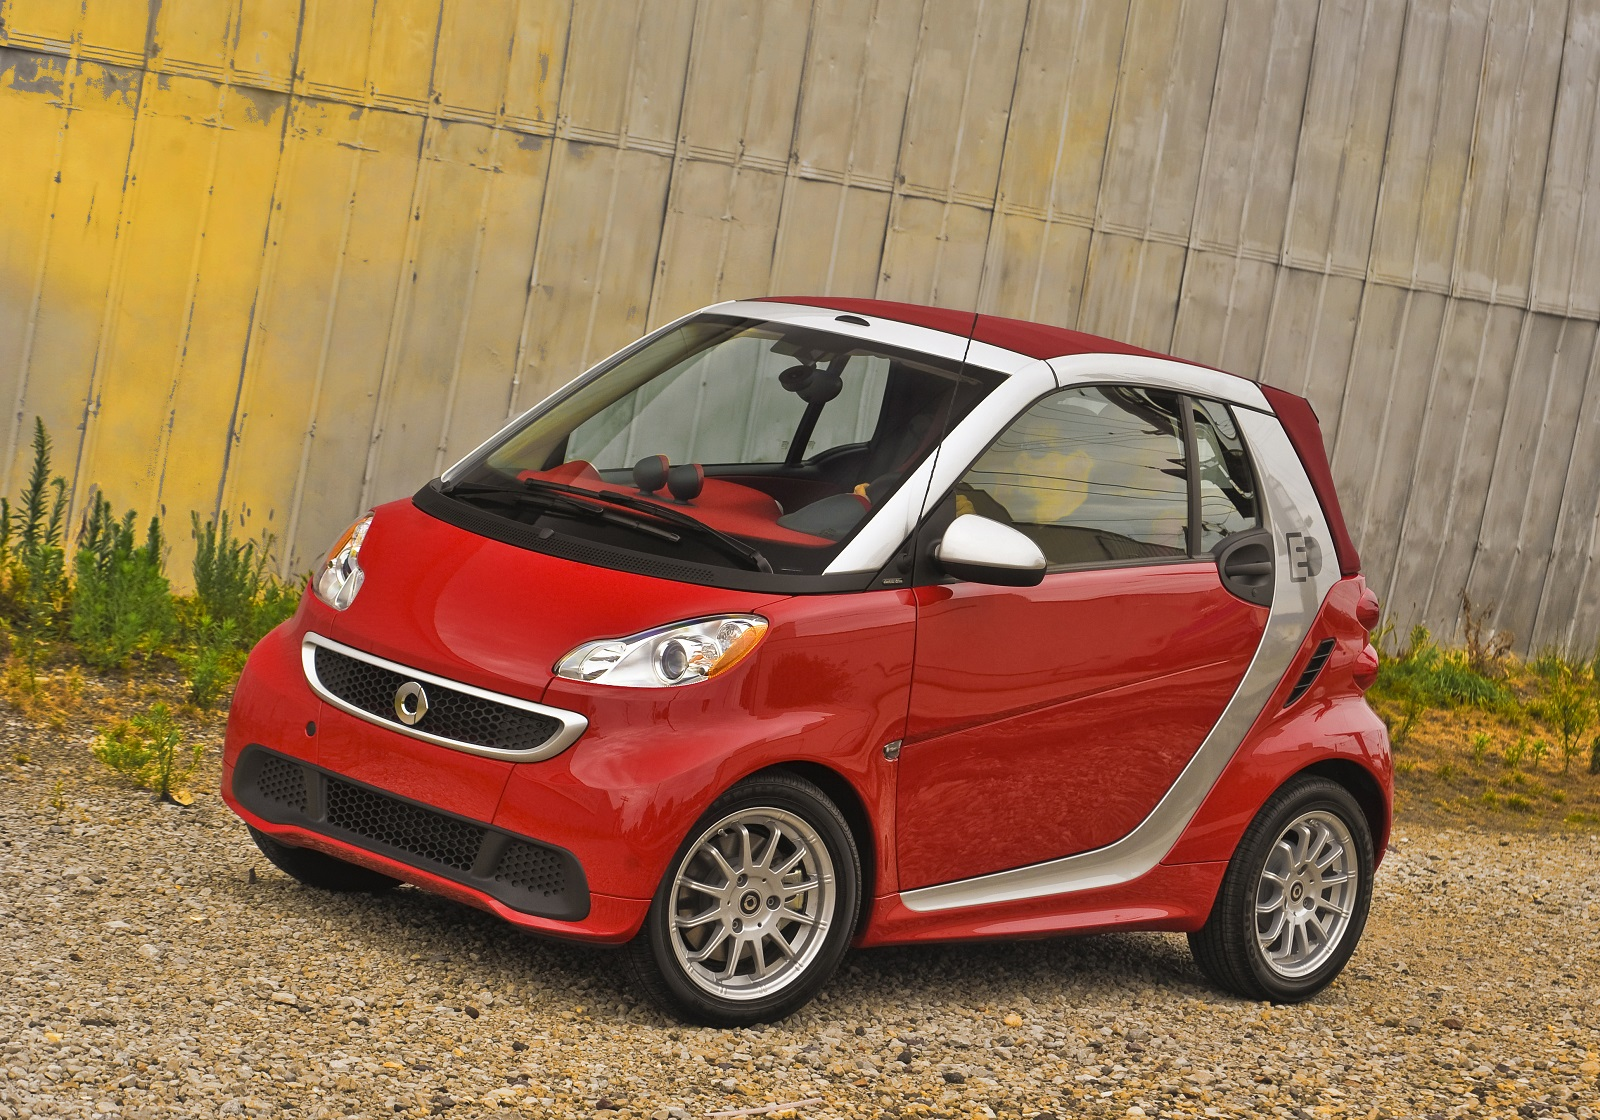 Tiny smart cars lose 5 billion for mercedes benz report for Smart car mercedes benz